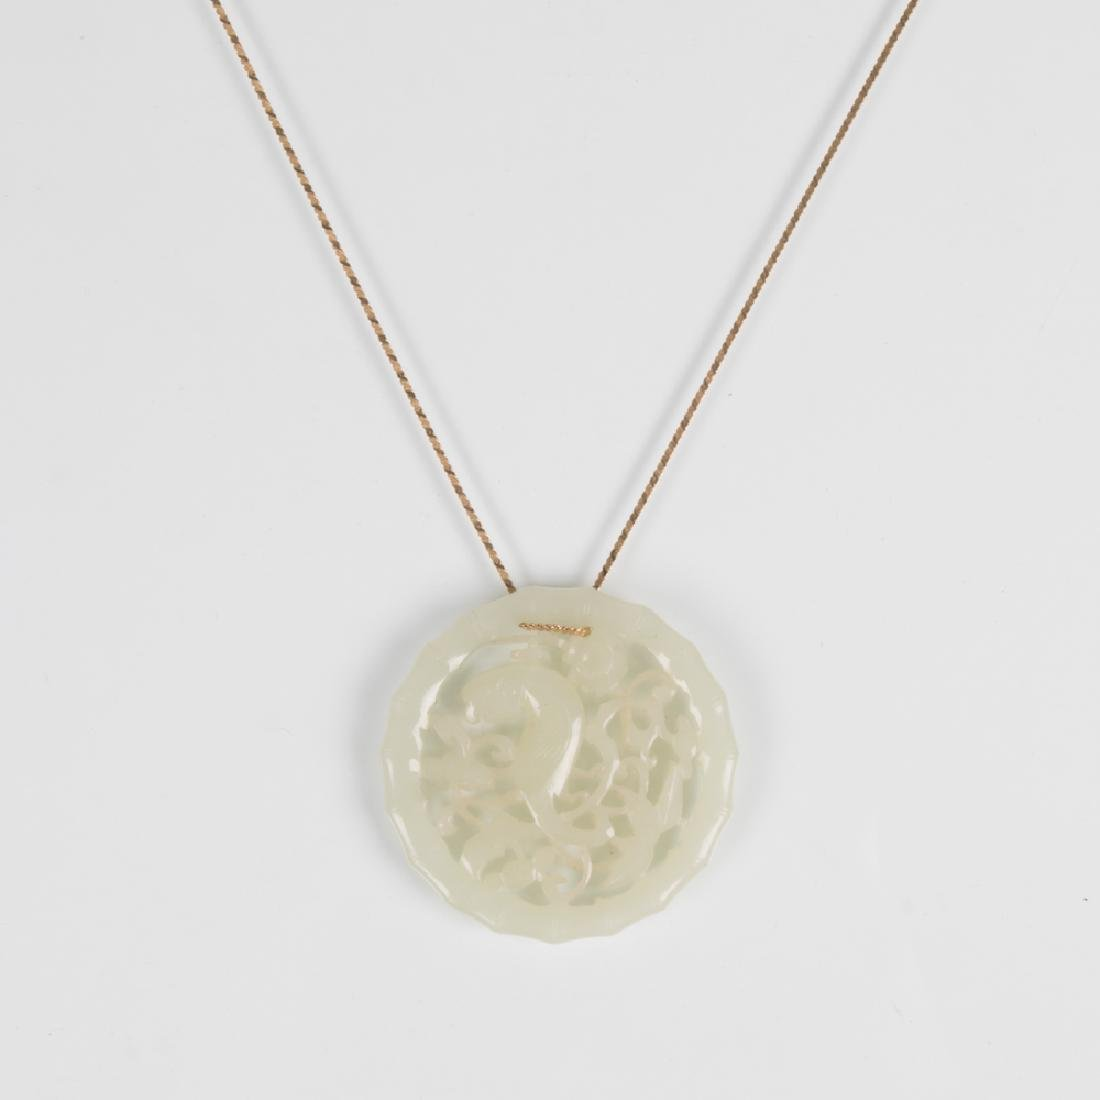 A Pierced Carved White Jade Pendant,